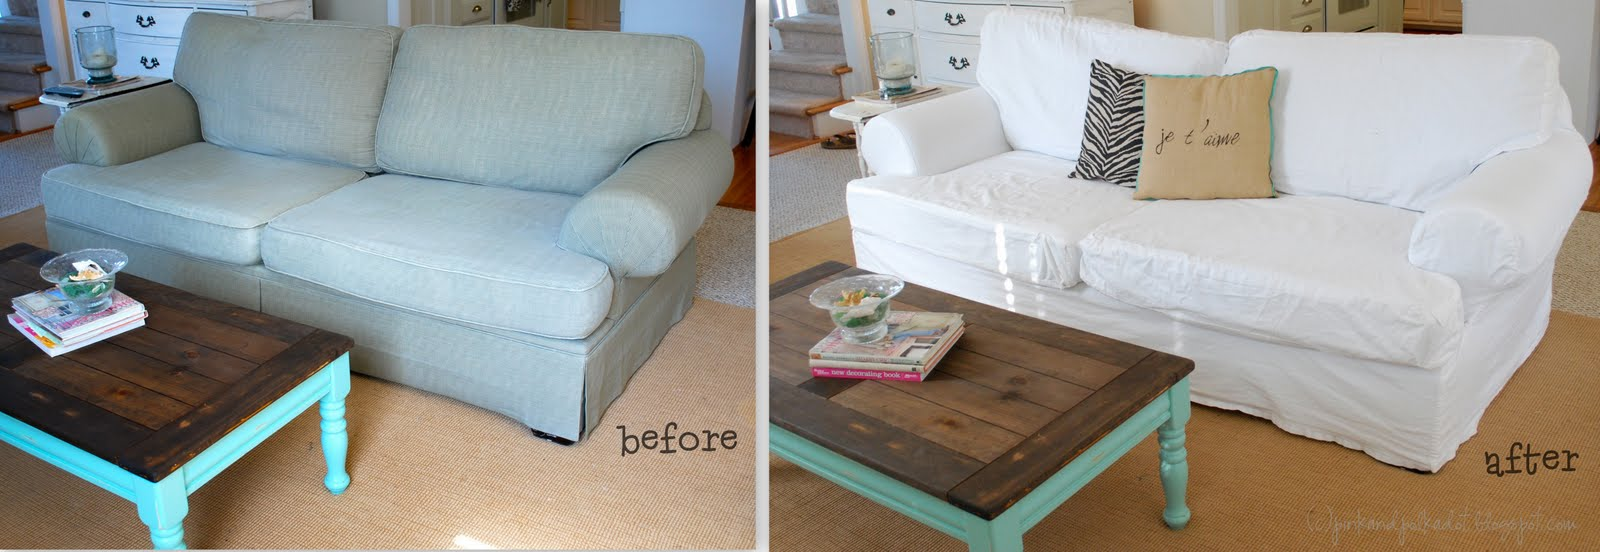 How To Make A Slipcover For A Sofa